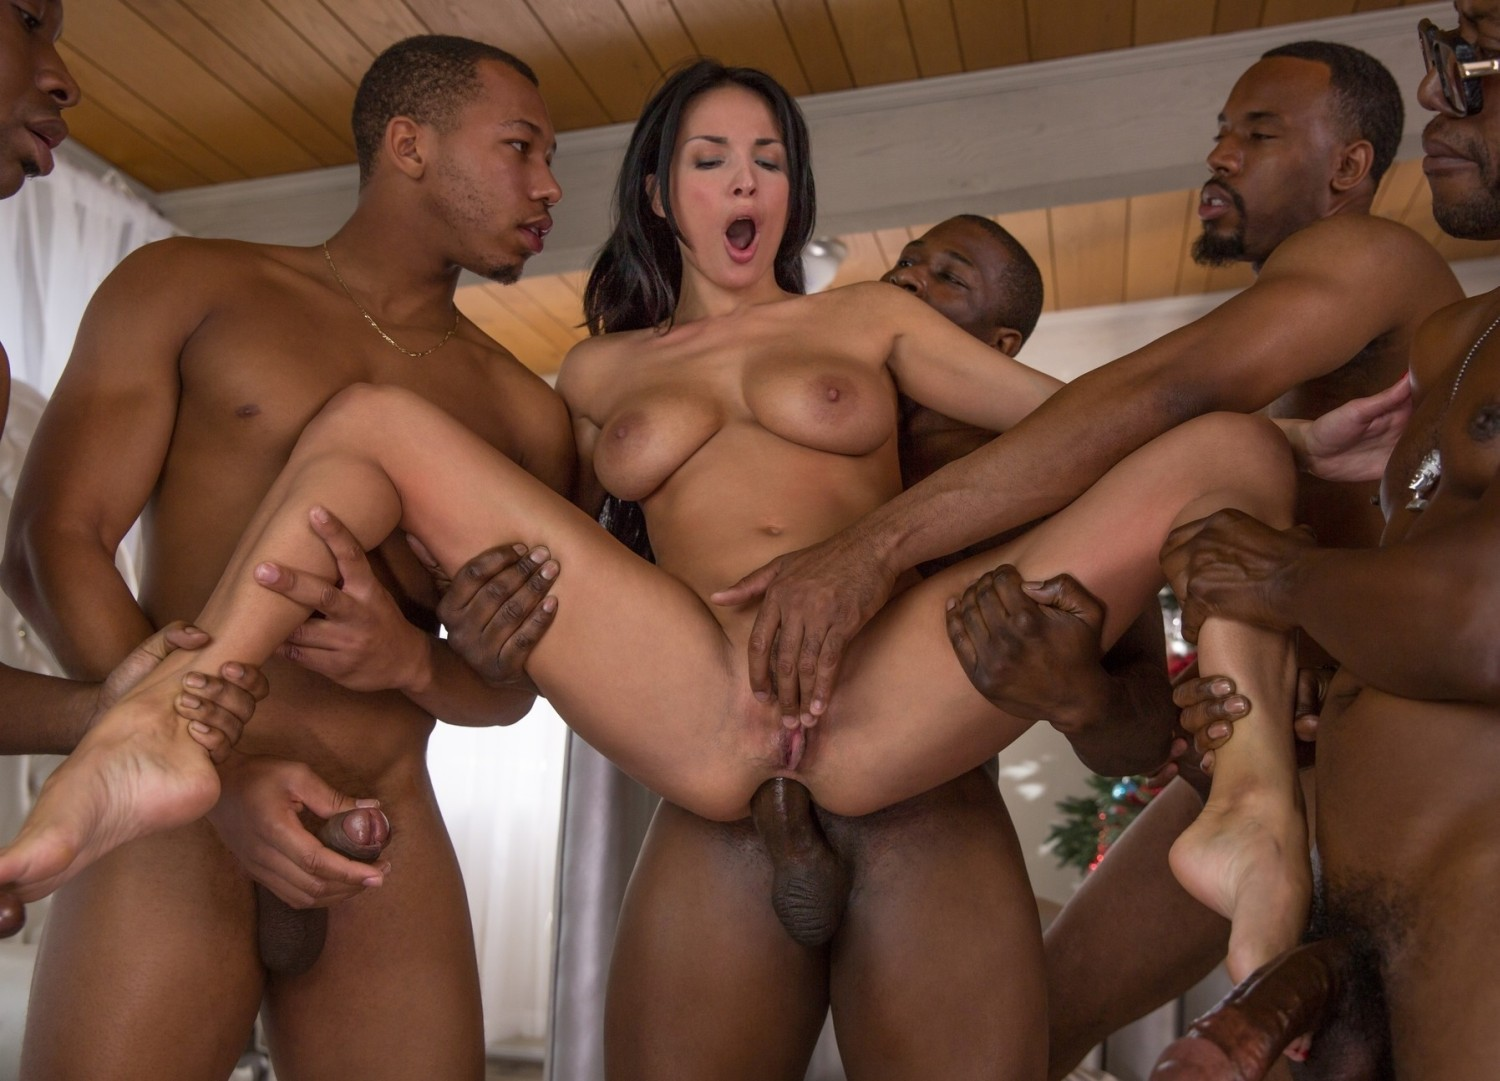 Black sex part movies 5